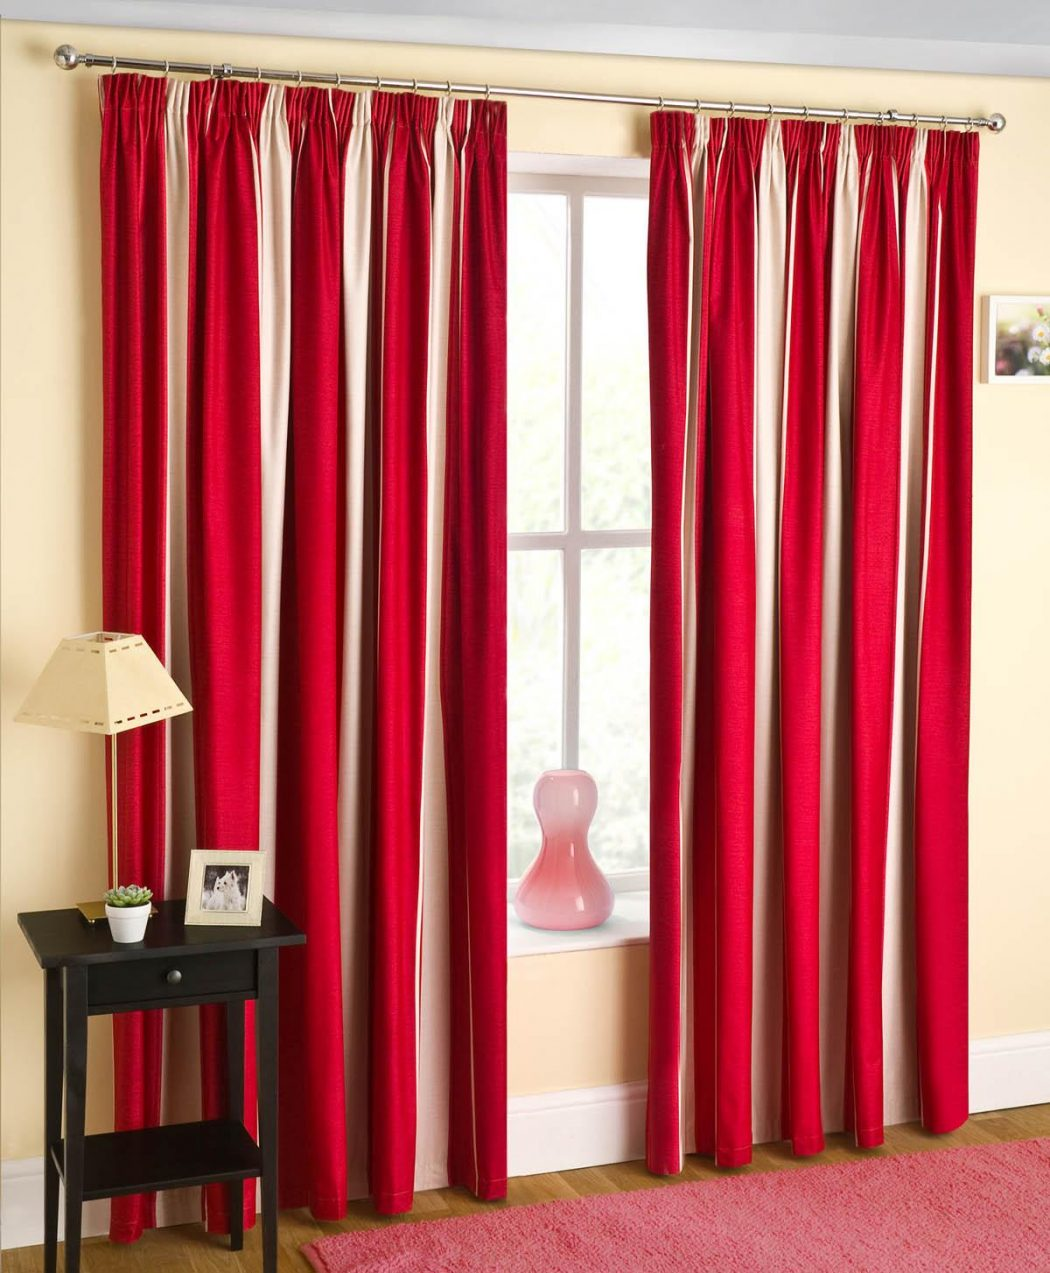 TWILIGHT-RED 20+ Hottest Curtain Designs for 2019